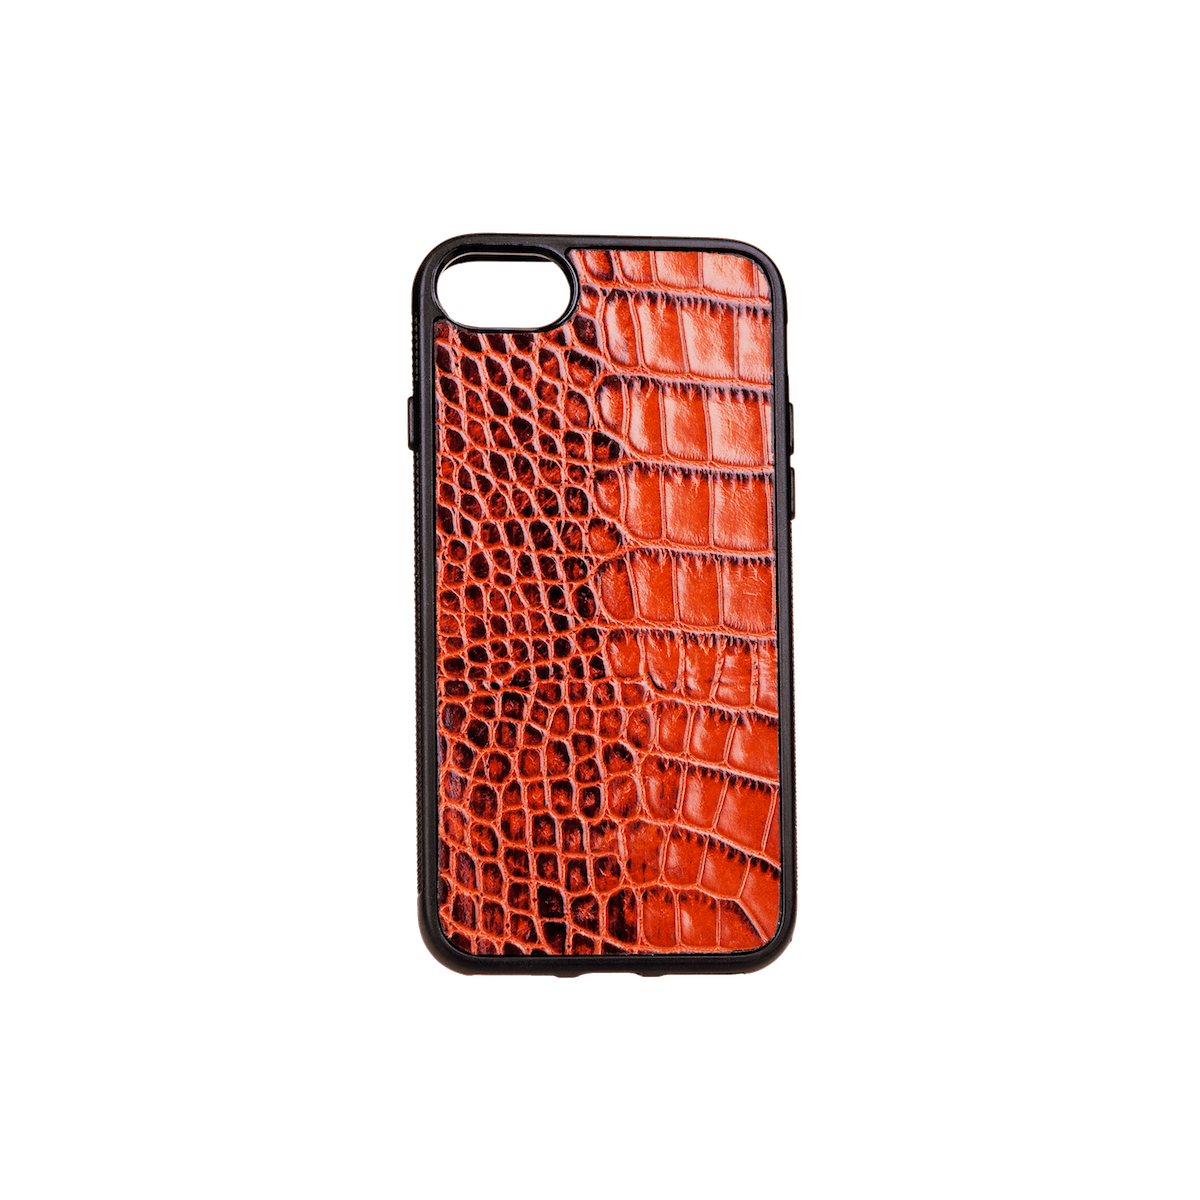 Iphone 7/8 Case, Tan Croco Leather, MAISON JMK-VONMEL Luxe Gifts